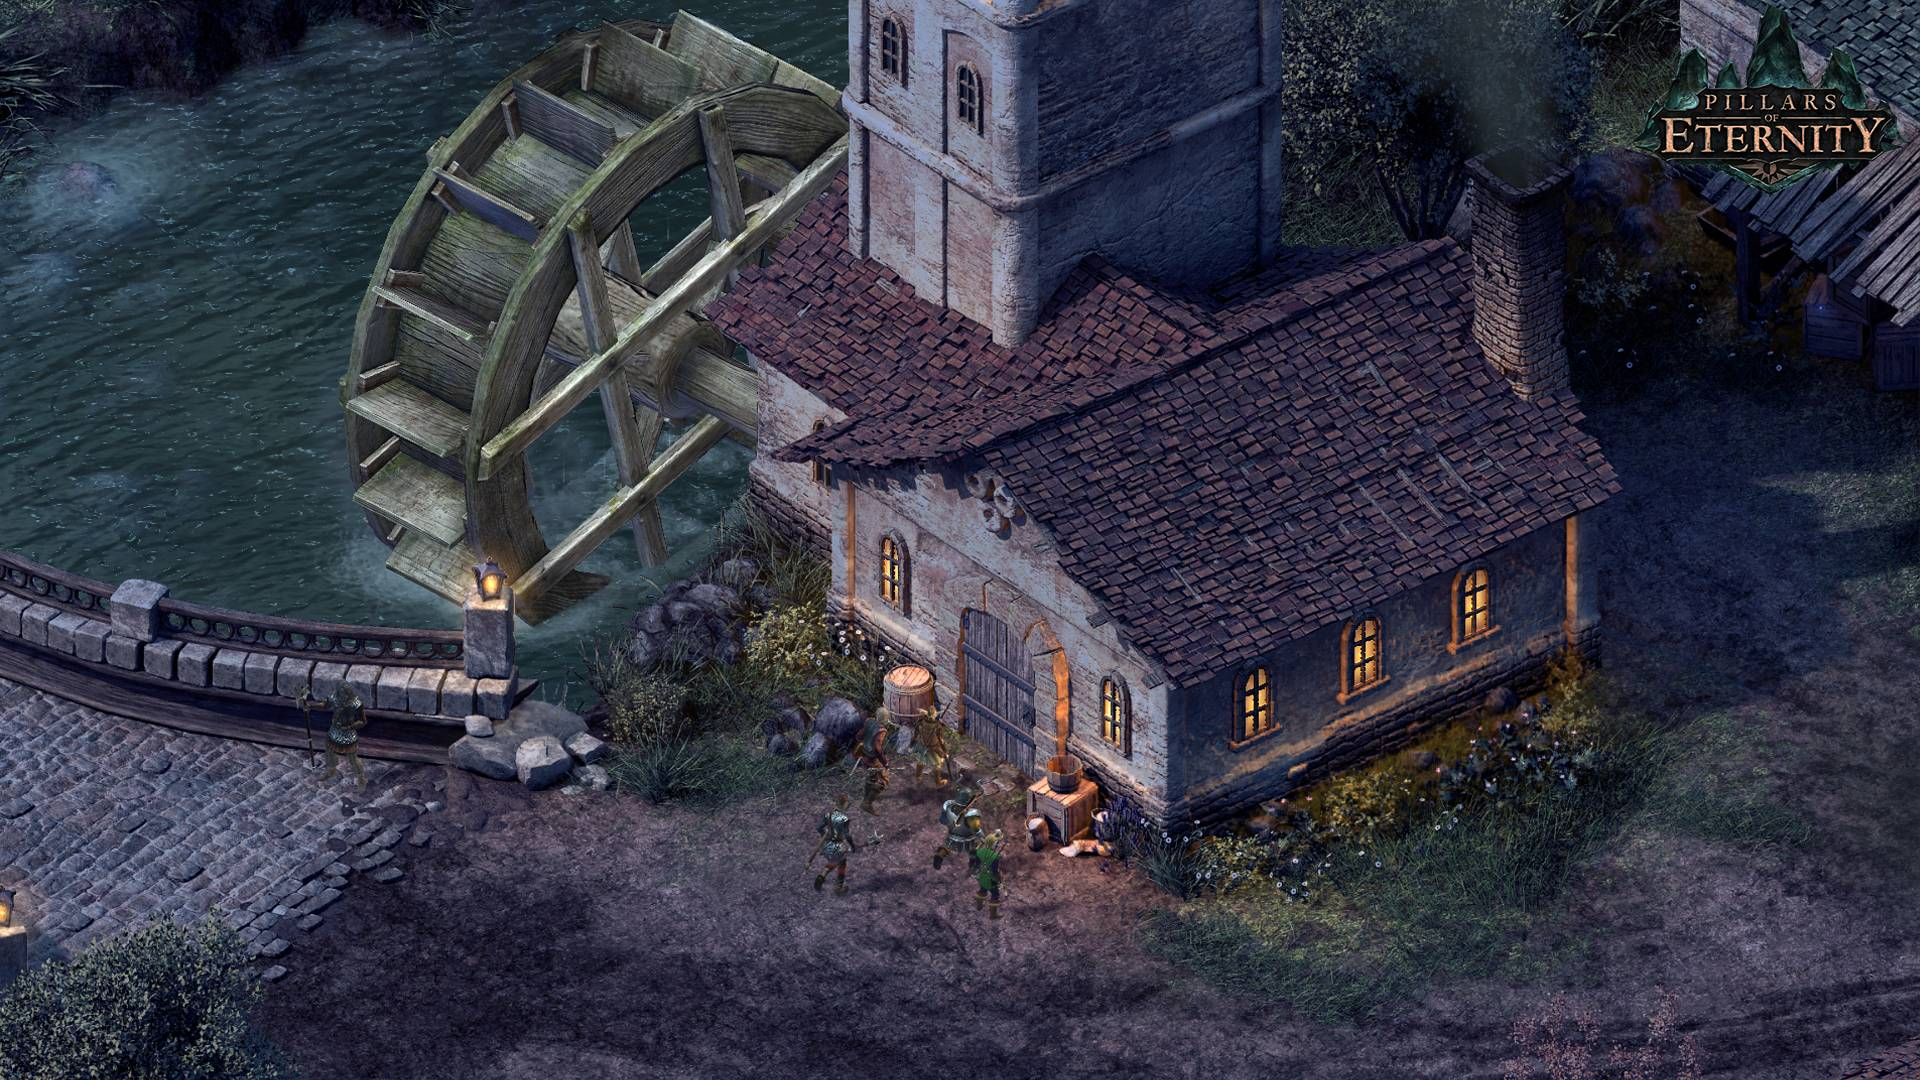 Pillars of Eternity Royal Ed (Steam Key / Region Free)